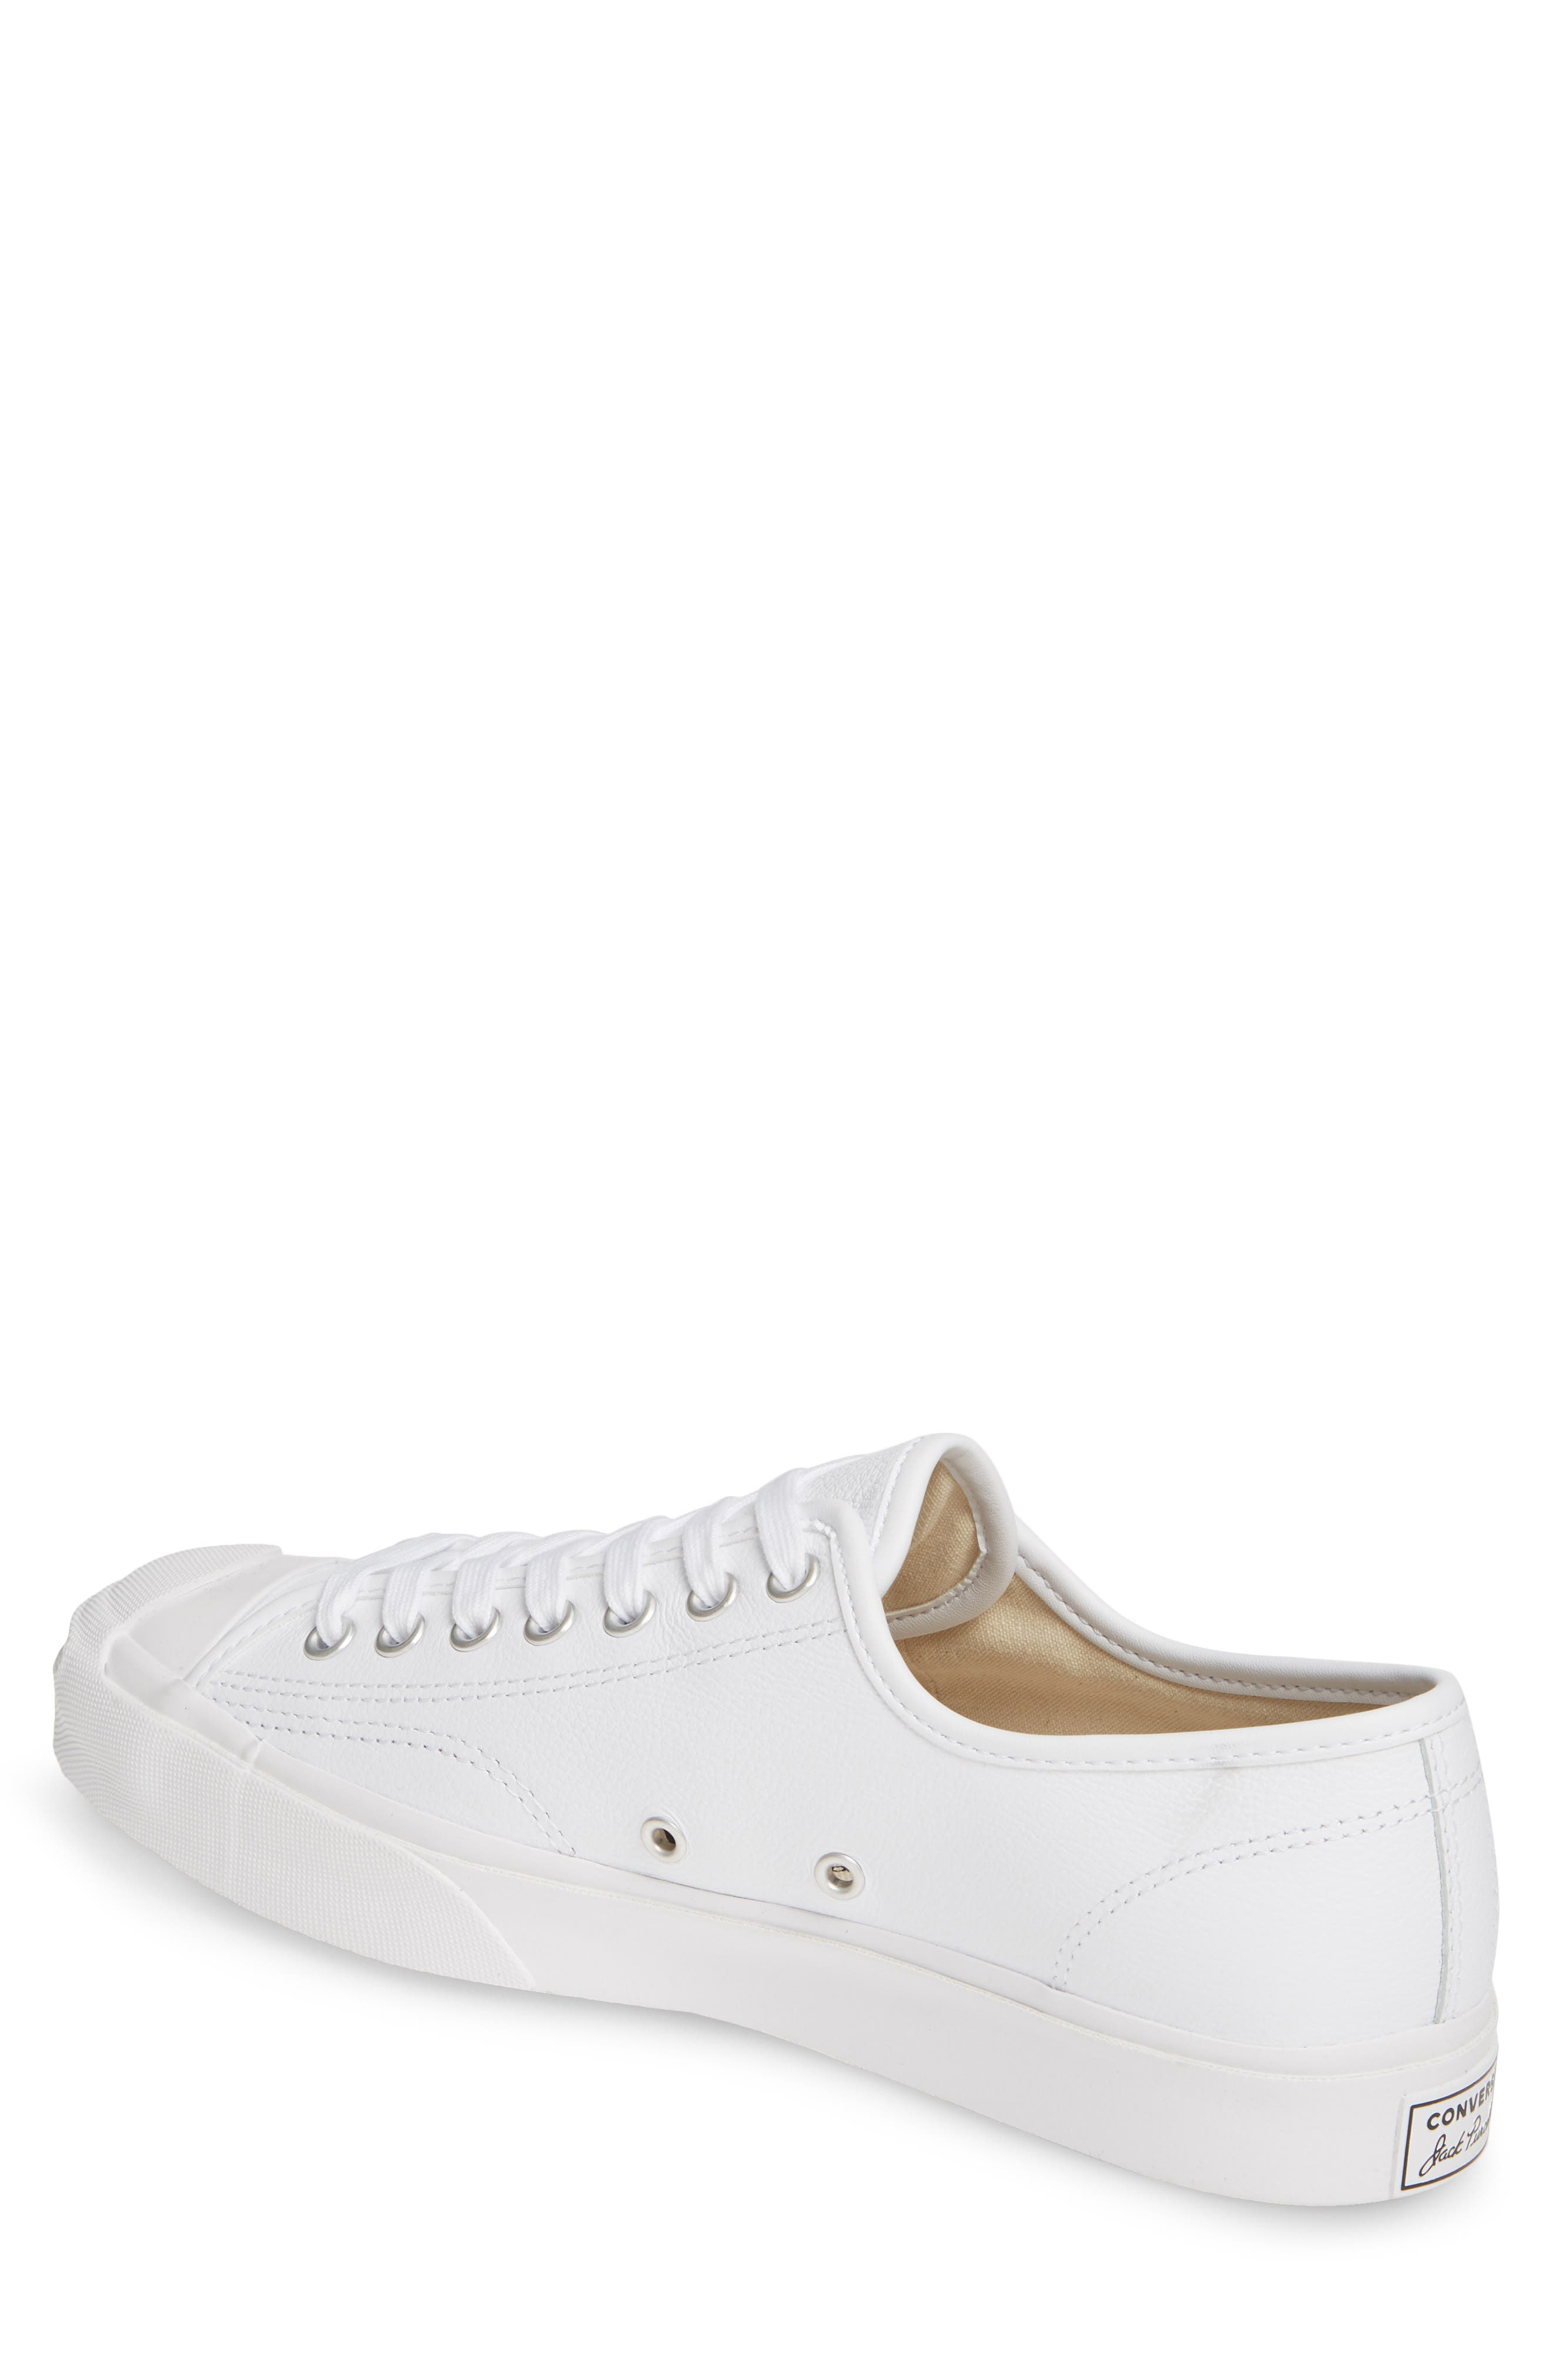 69247a05ce4a4a Converse Jack Purcell